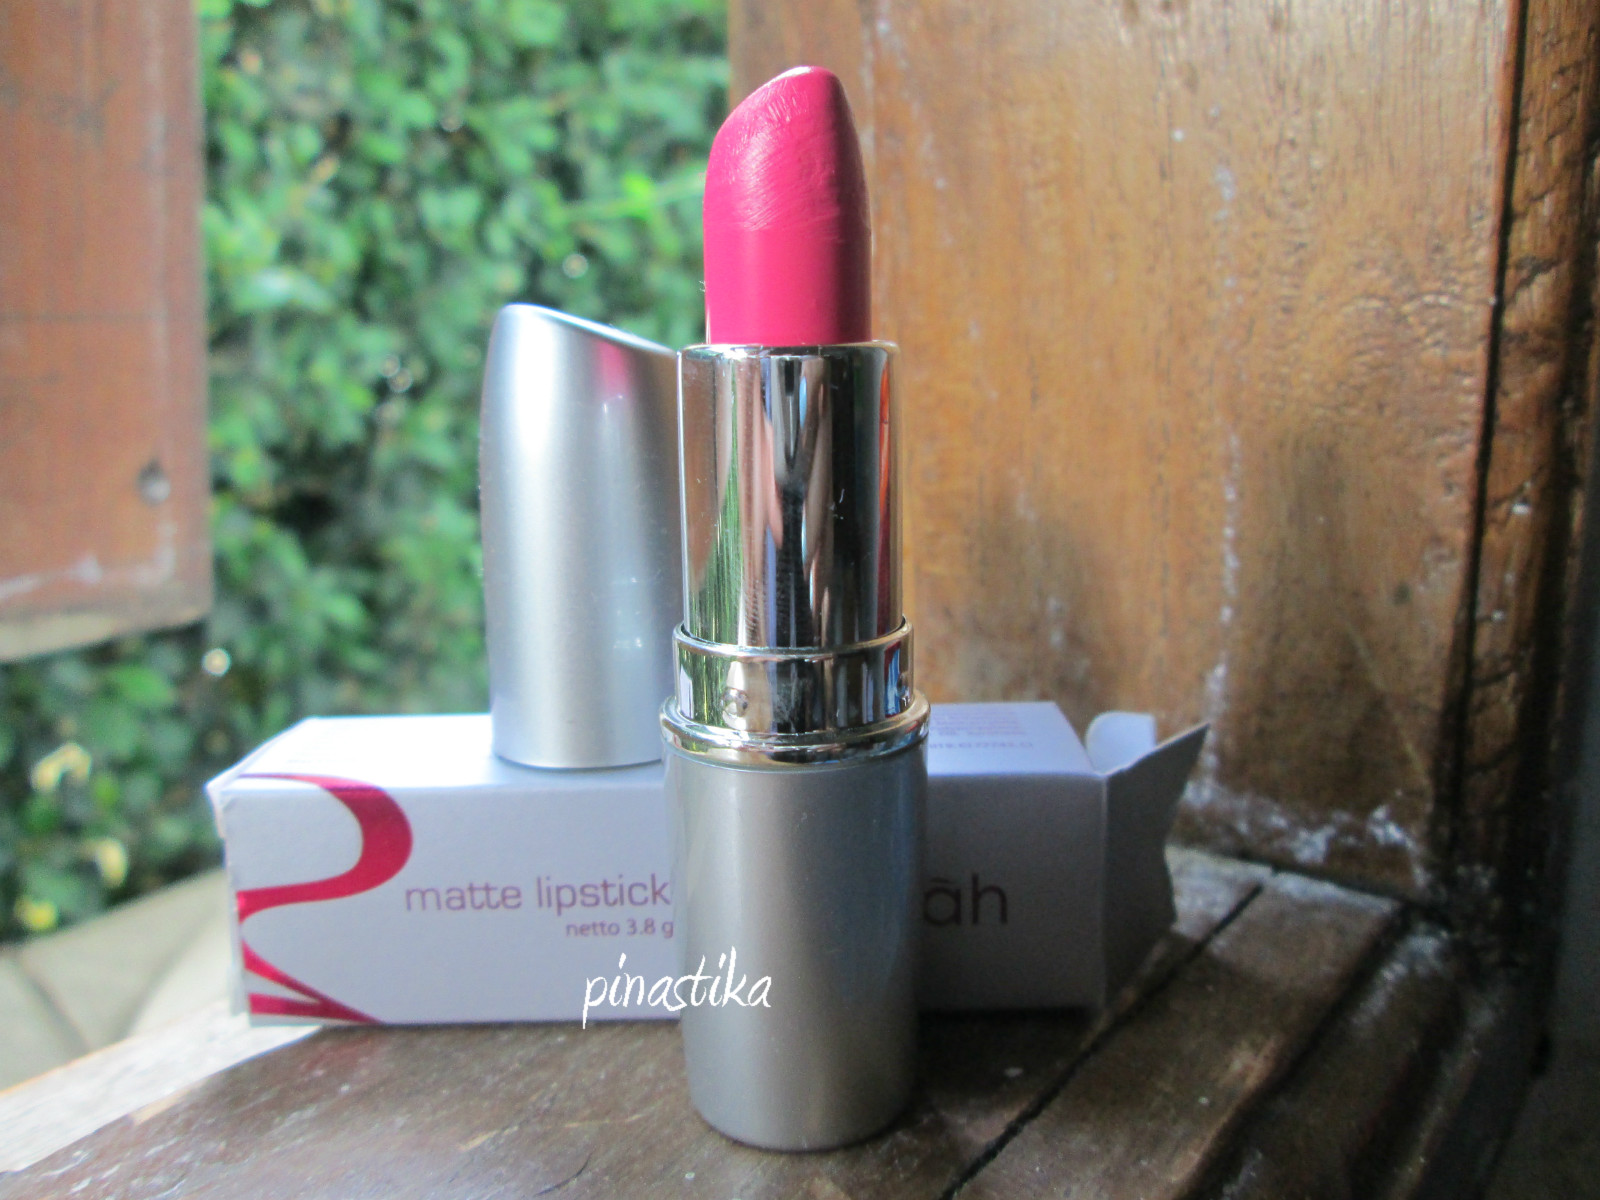 Pinastika Beauty Blog Review Wardah Matte Lipstick No